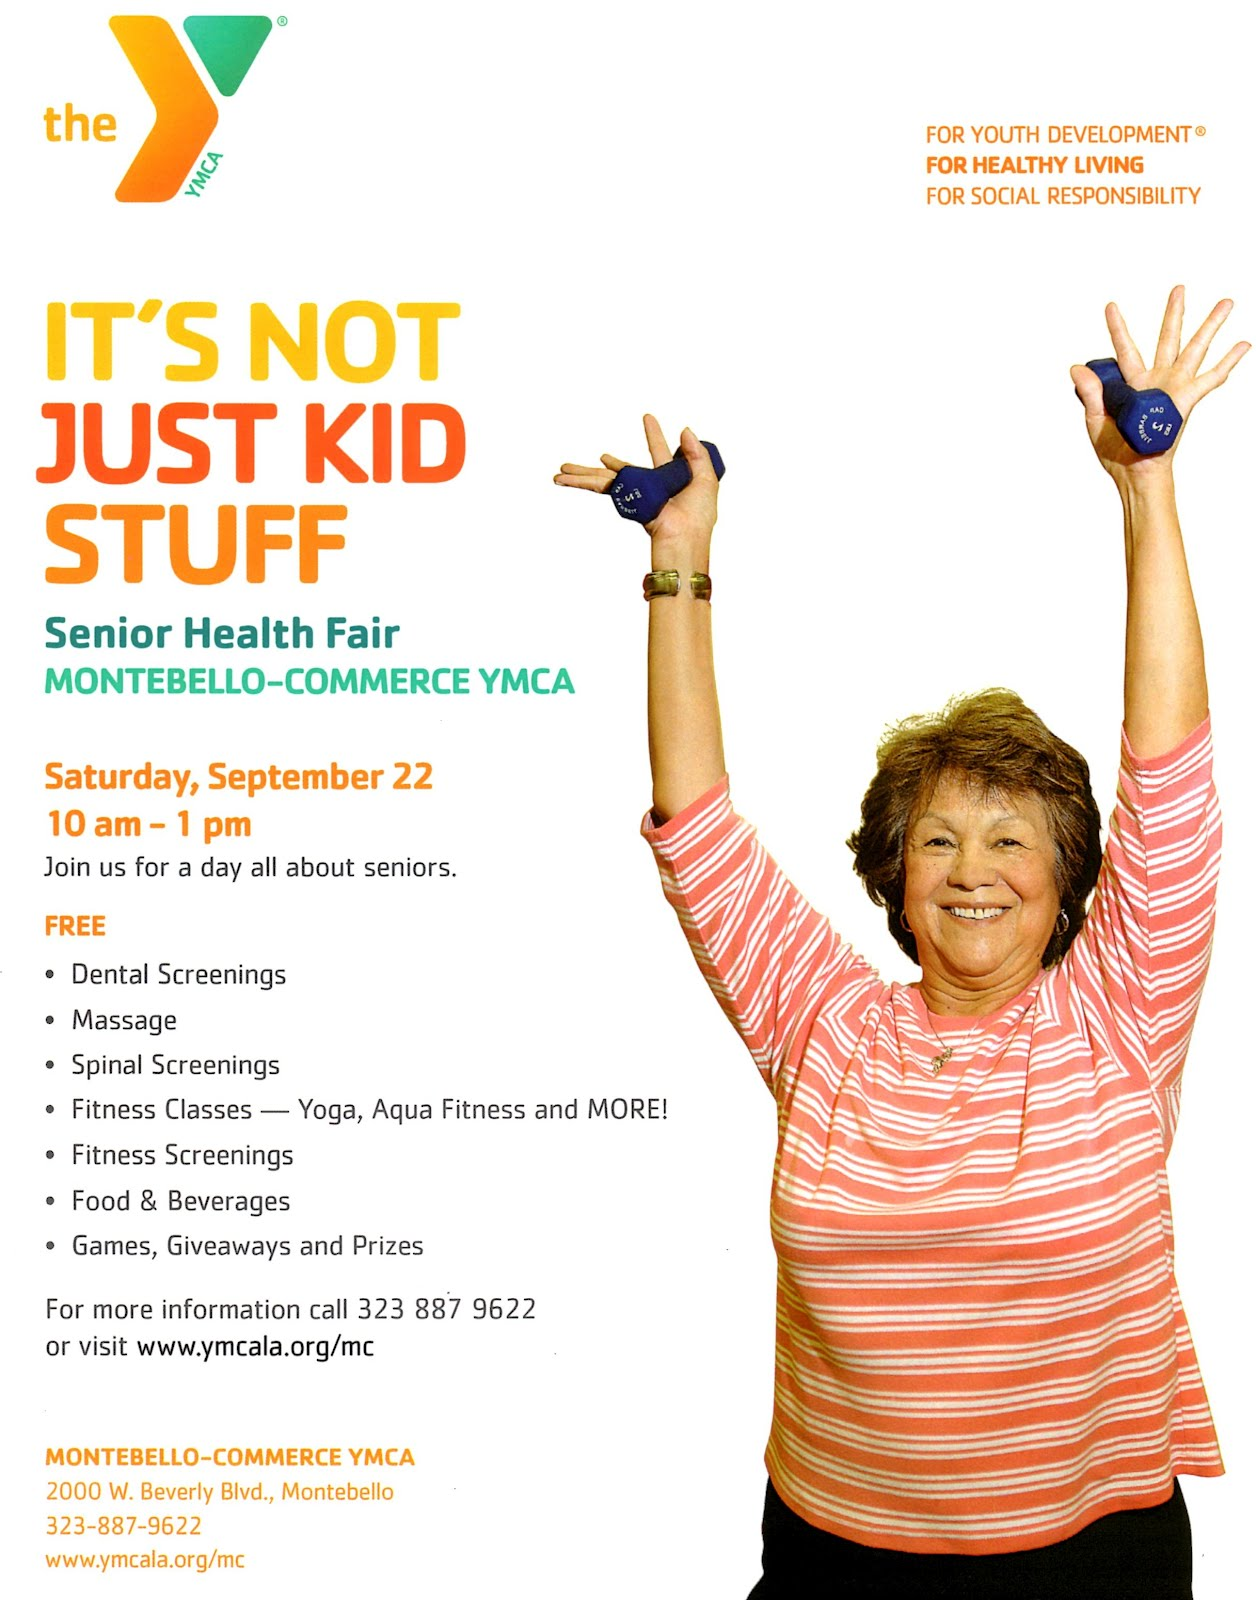 Senior Health Fair Flyer Senior Health Fair Montebello